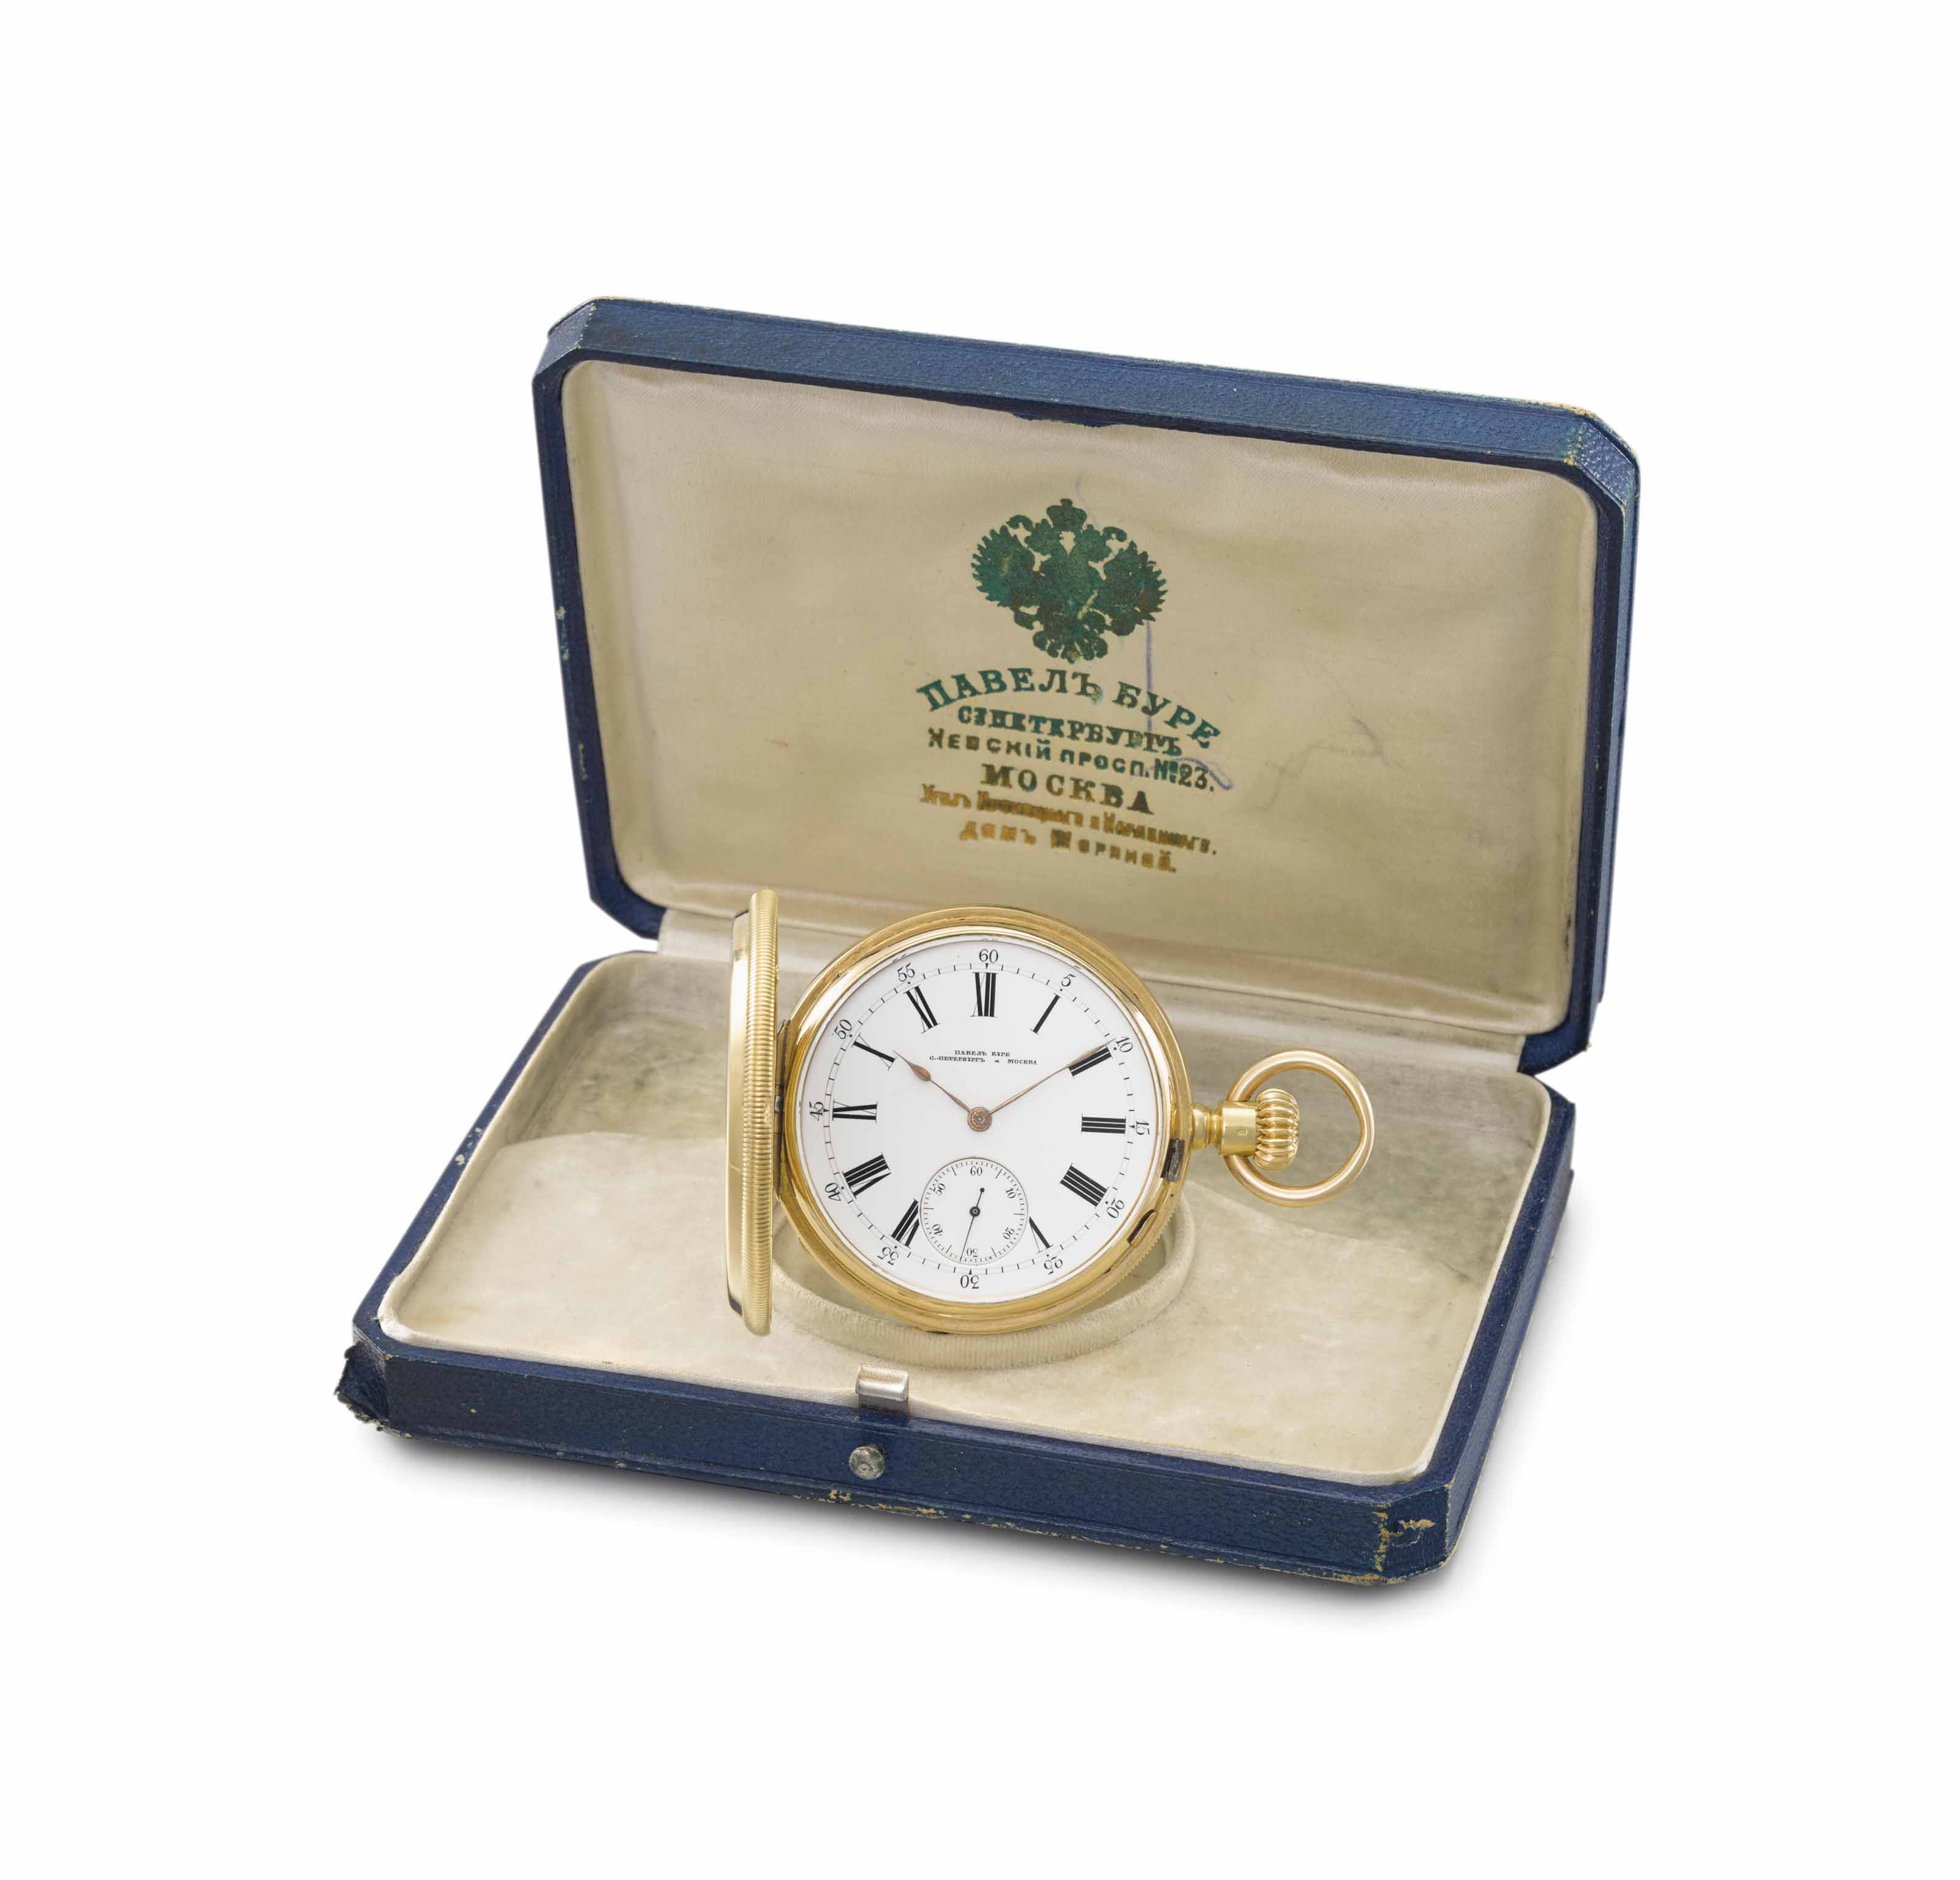 Paul Buhré. A very fine and rare 18K gold and enamel gold hunter case keyless lever imperial presentation watch with box, given by Tsar Alexander III to the opera singer Konstantin Serebryakov